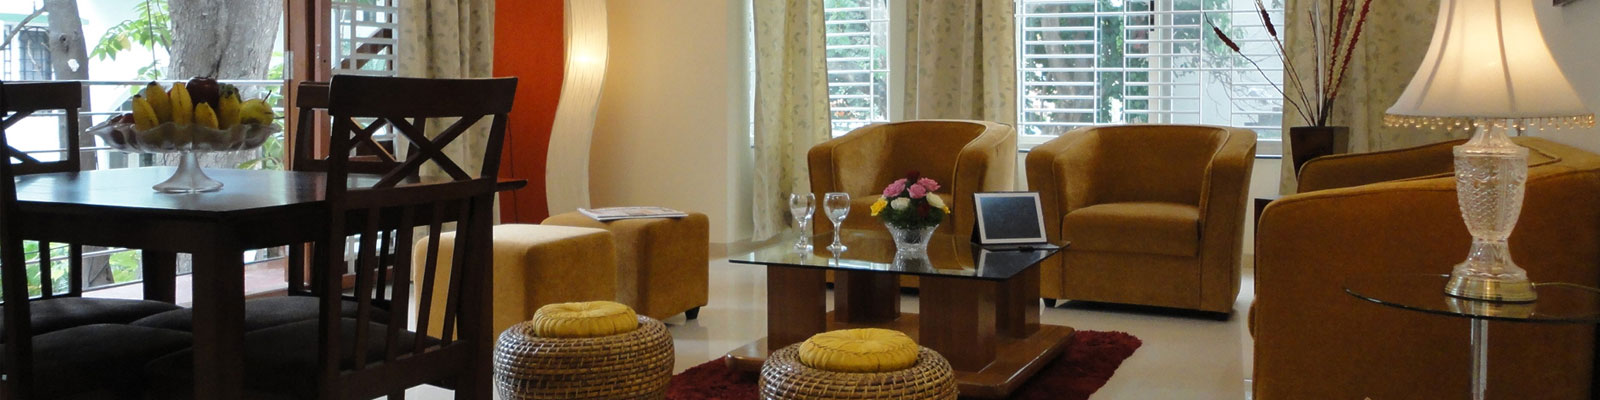 Premium Serviced Apartments contact us